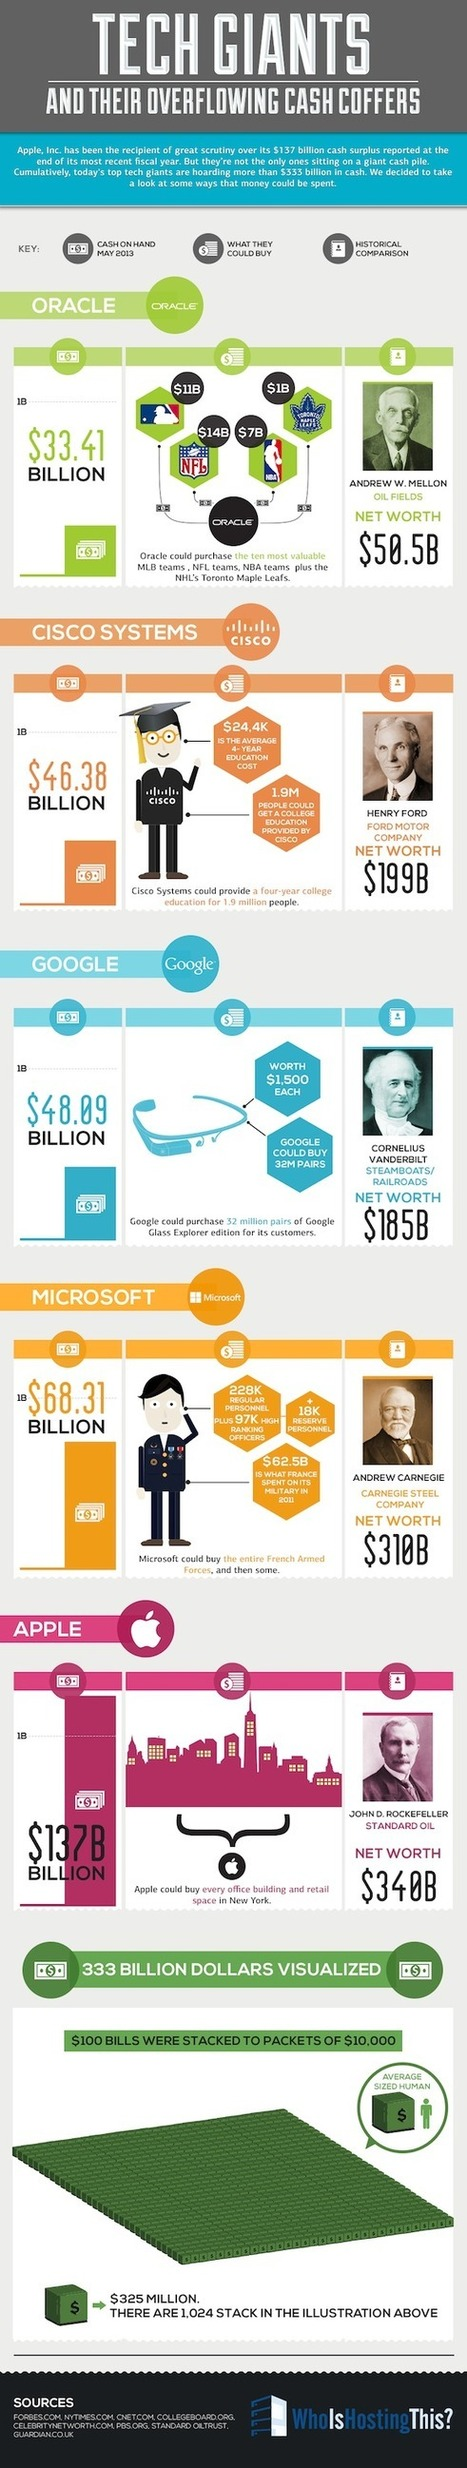 Tech Giants and Their Overflowing Cash Coffers [Infographic] - Business 2 Community | Business Industry Infographics | Scoop.it